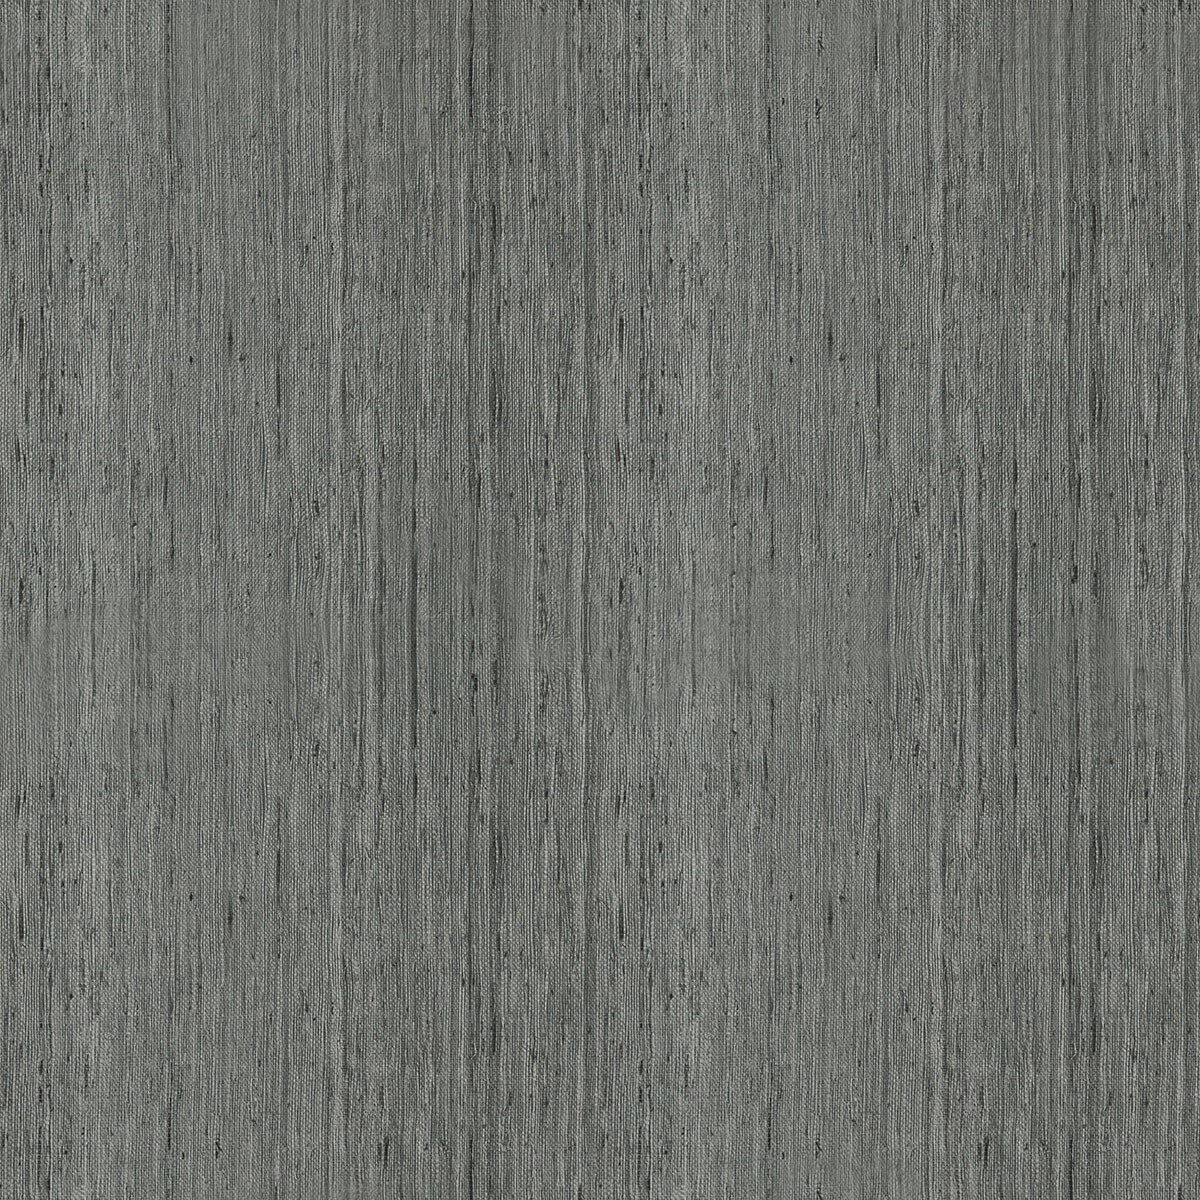 6324 Slate Grasscloth Laminate Countertops